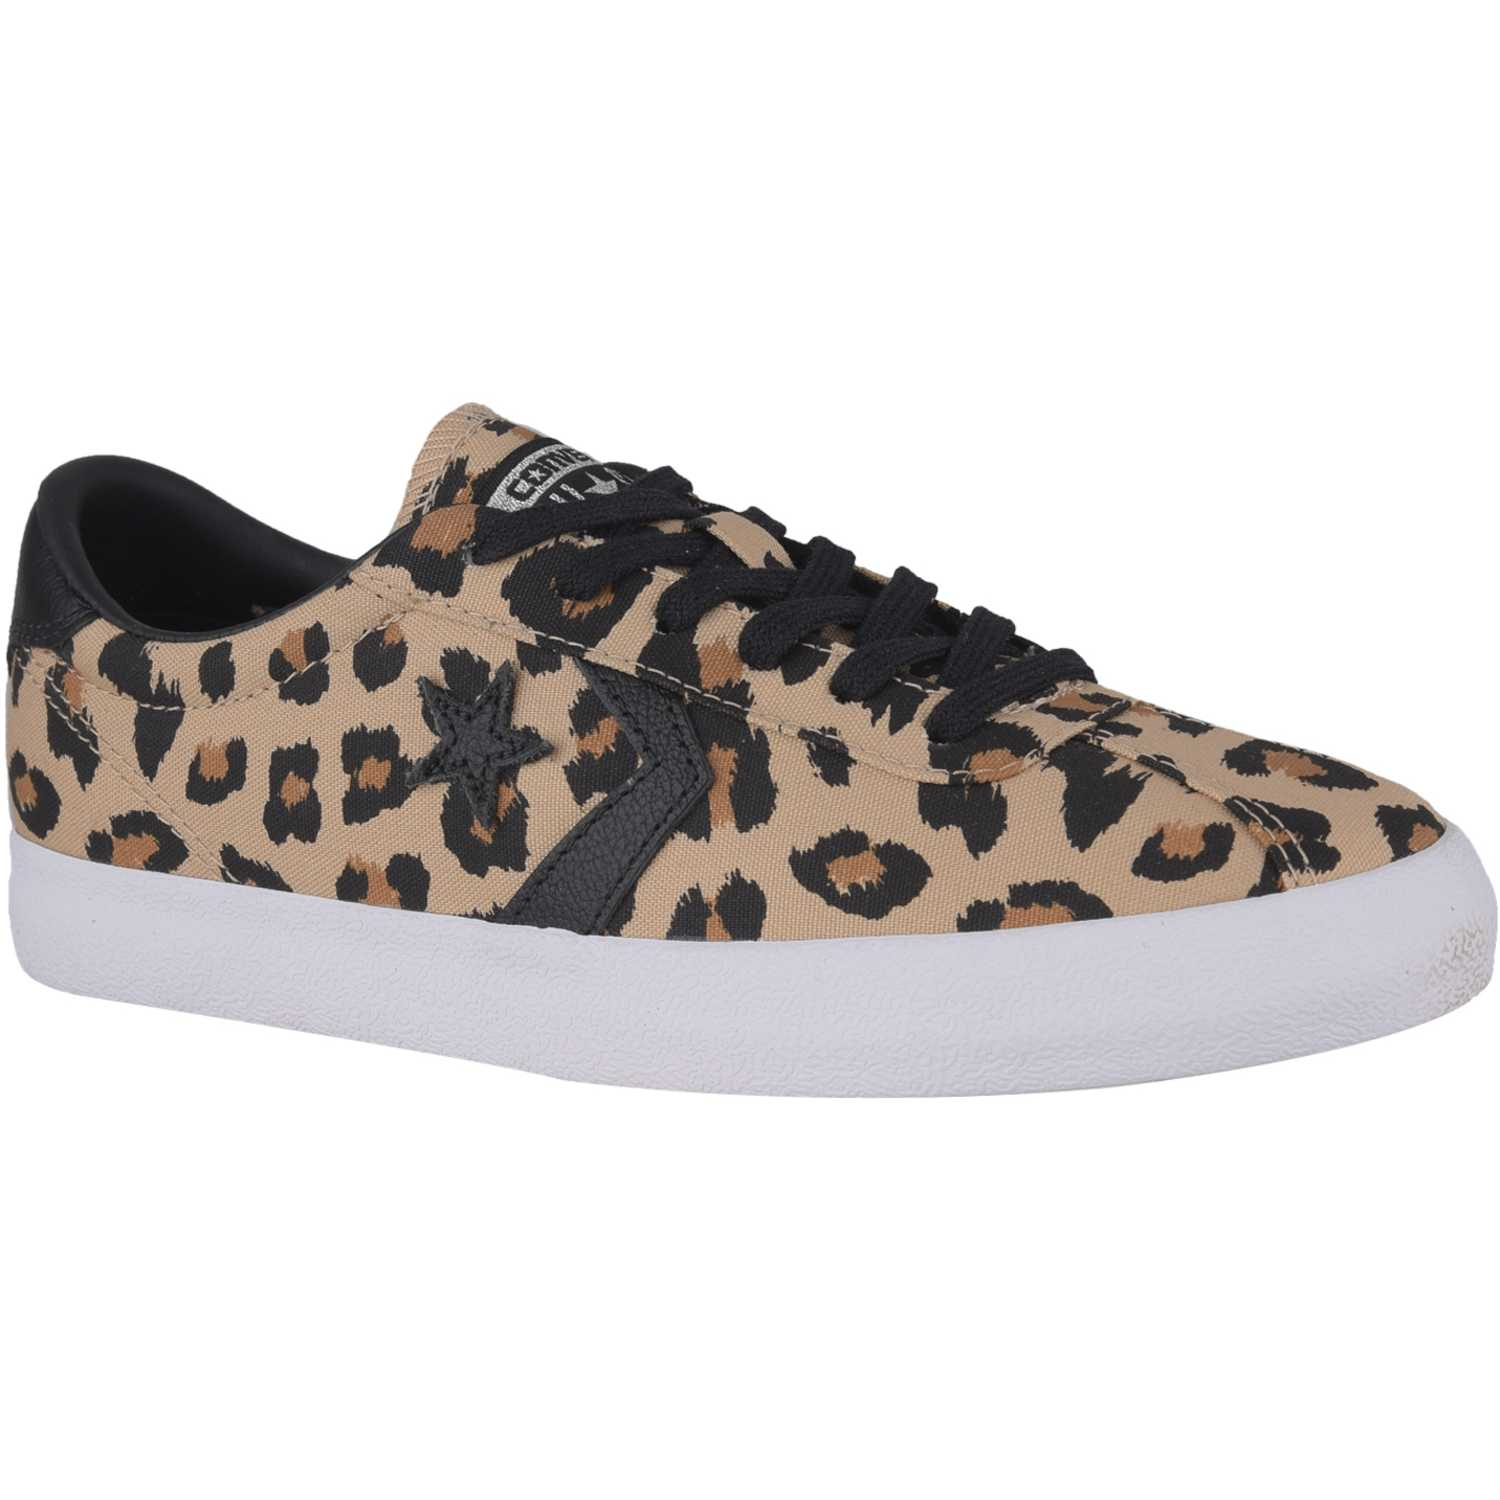 3b7596f0bc98da Zapatilla de Jovencita Converse Varios break point animal print ...